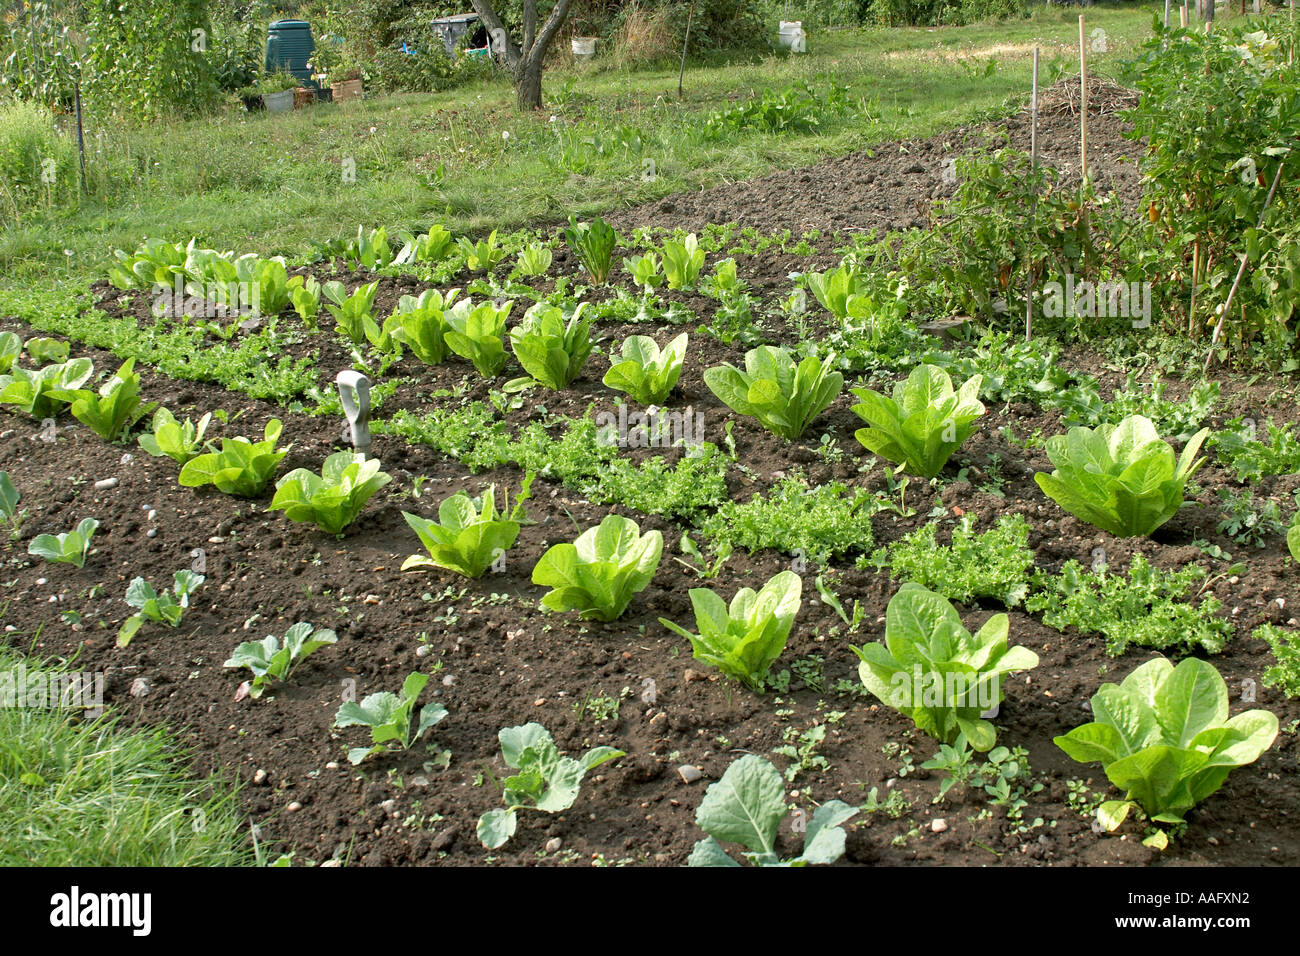 Allotment Gardens With Organic Home Grown Lettuce And